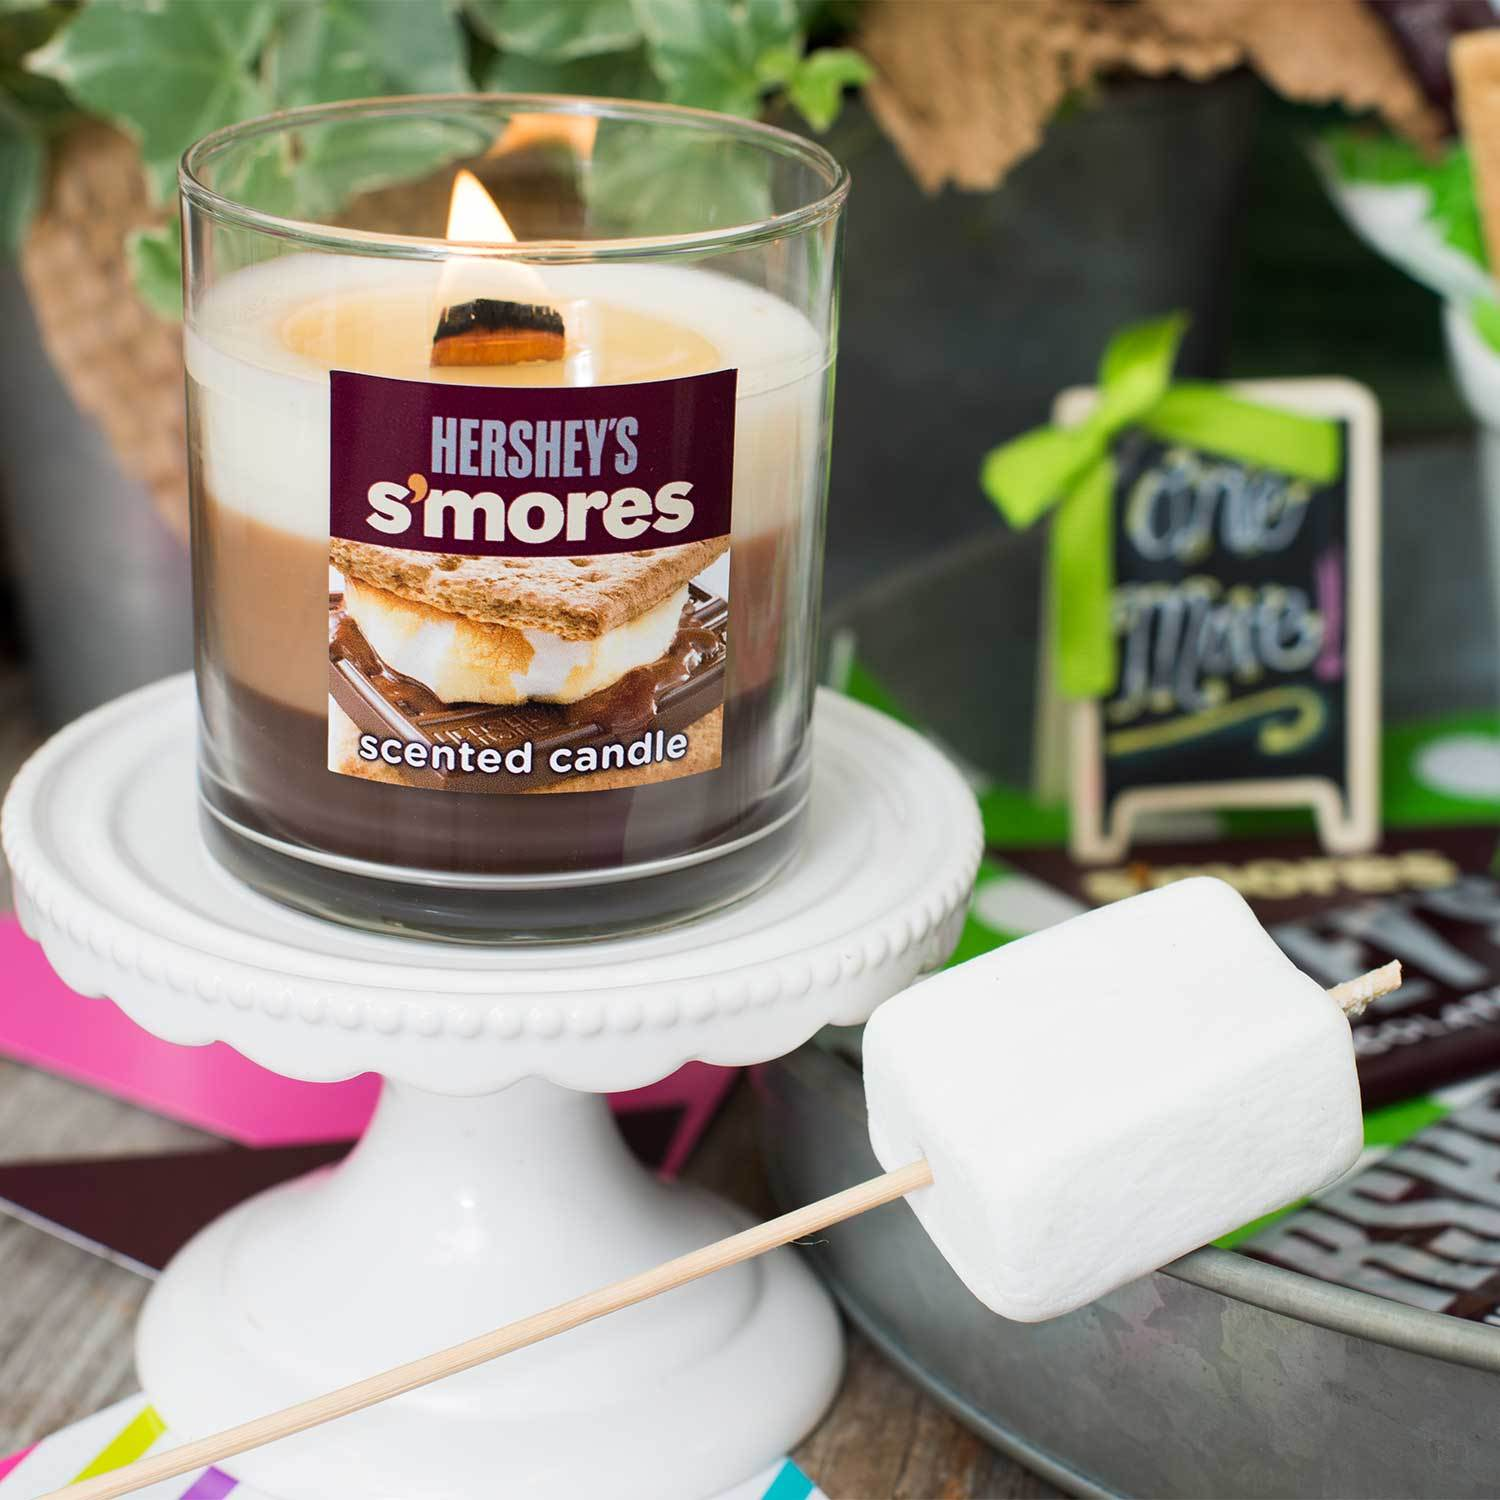 HERSHEY'S Triple Pour Smore's Scented Tumbler Candle Timberwick Candlemart.com $ 9.99